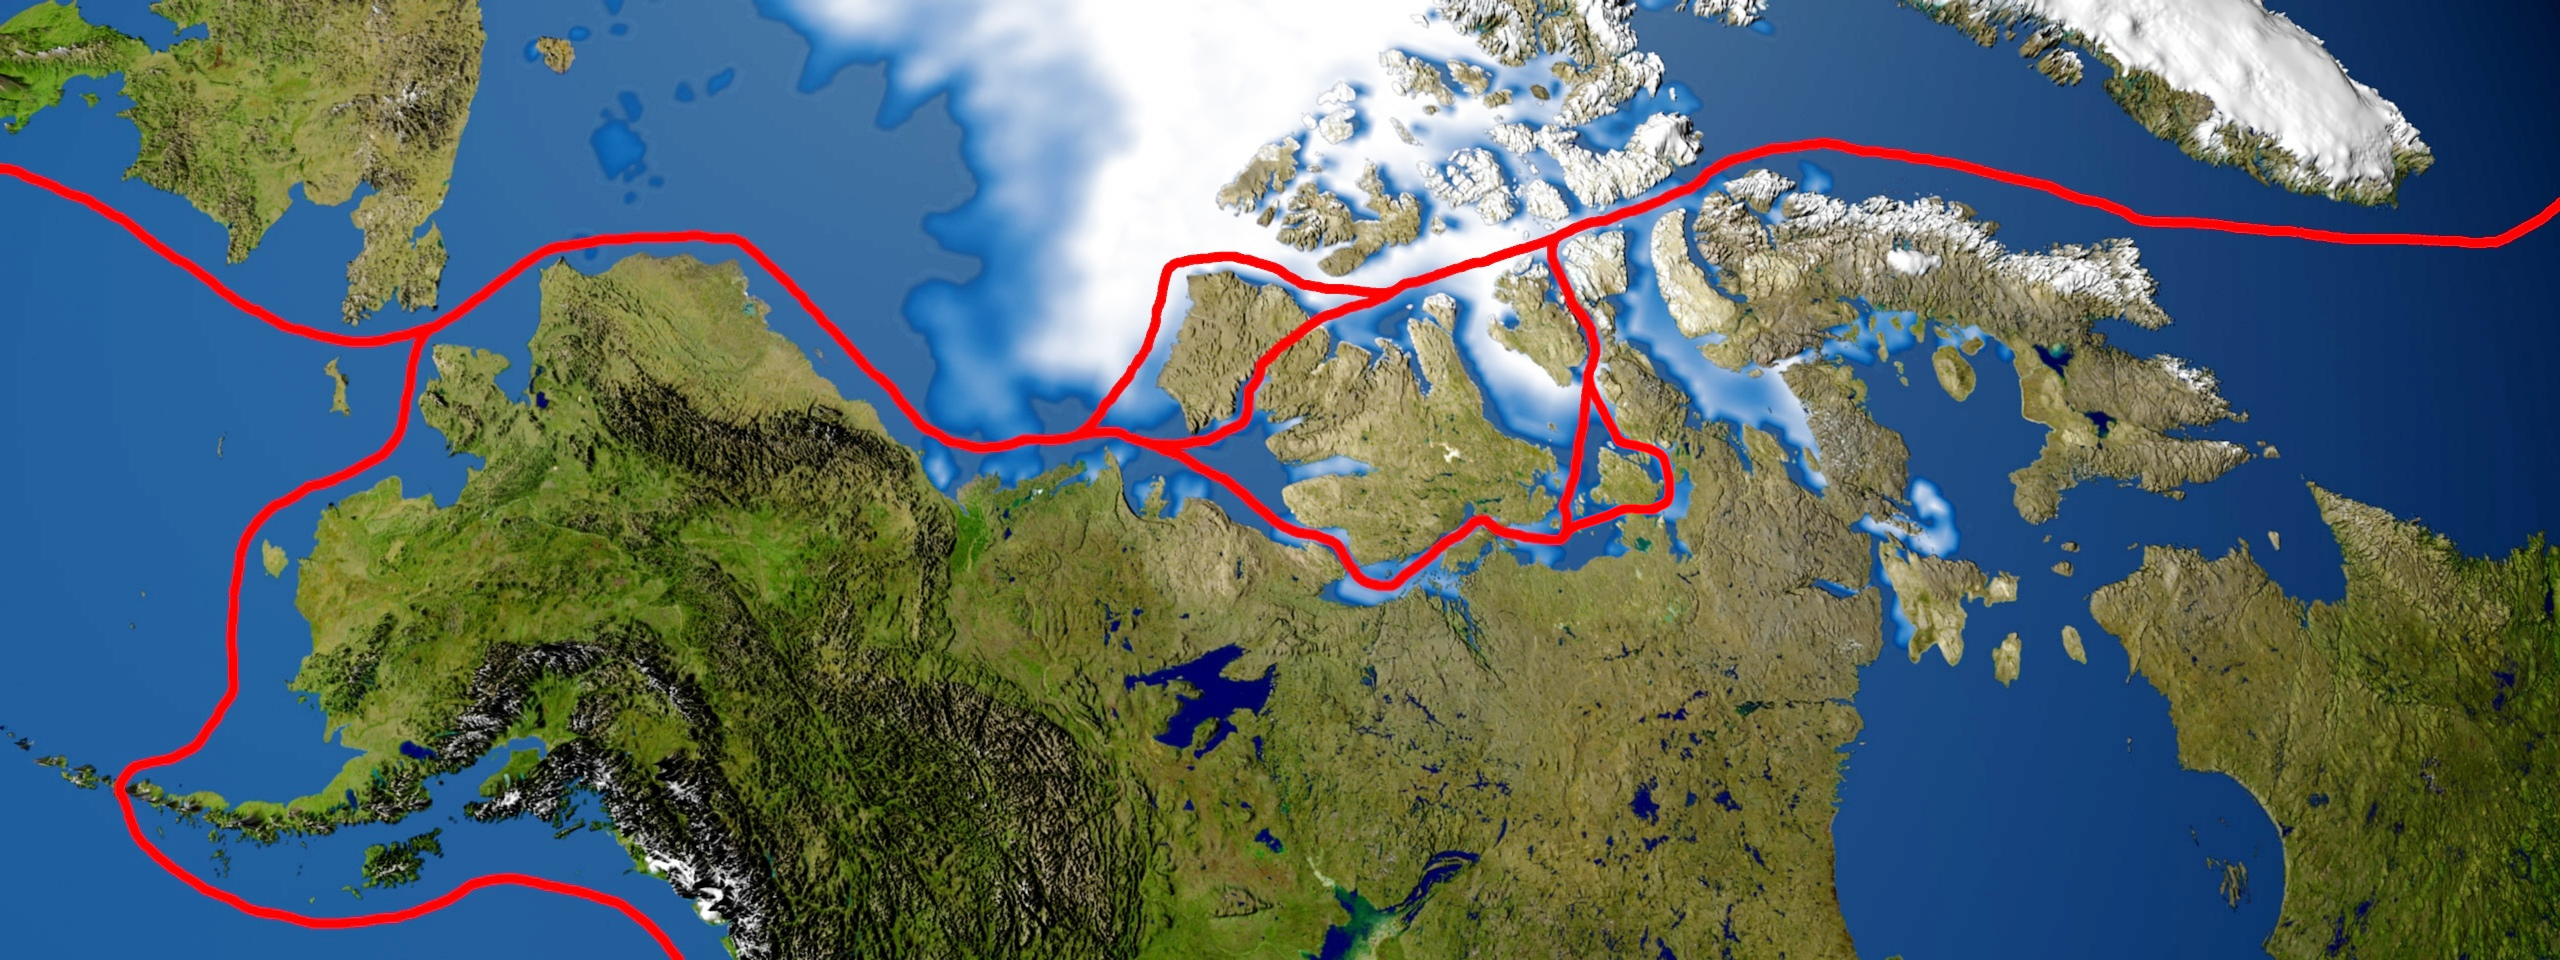 Northwest passage.jpg